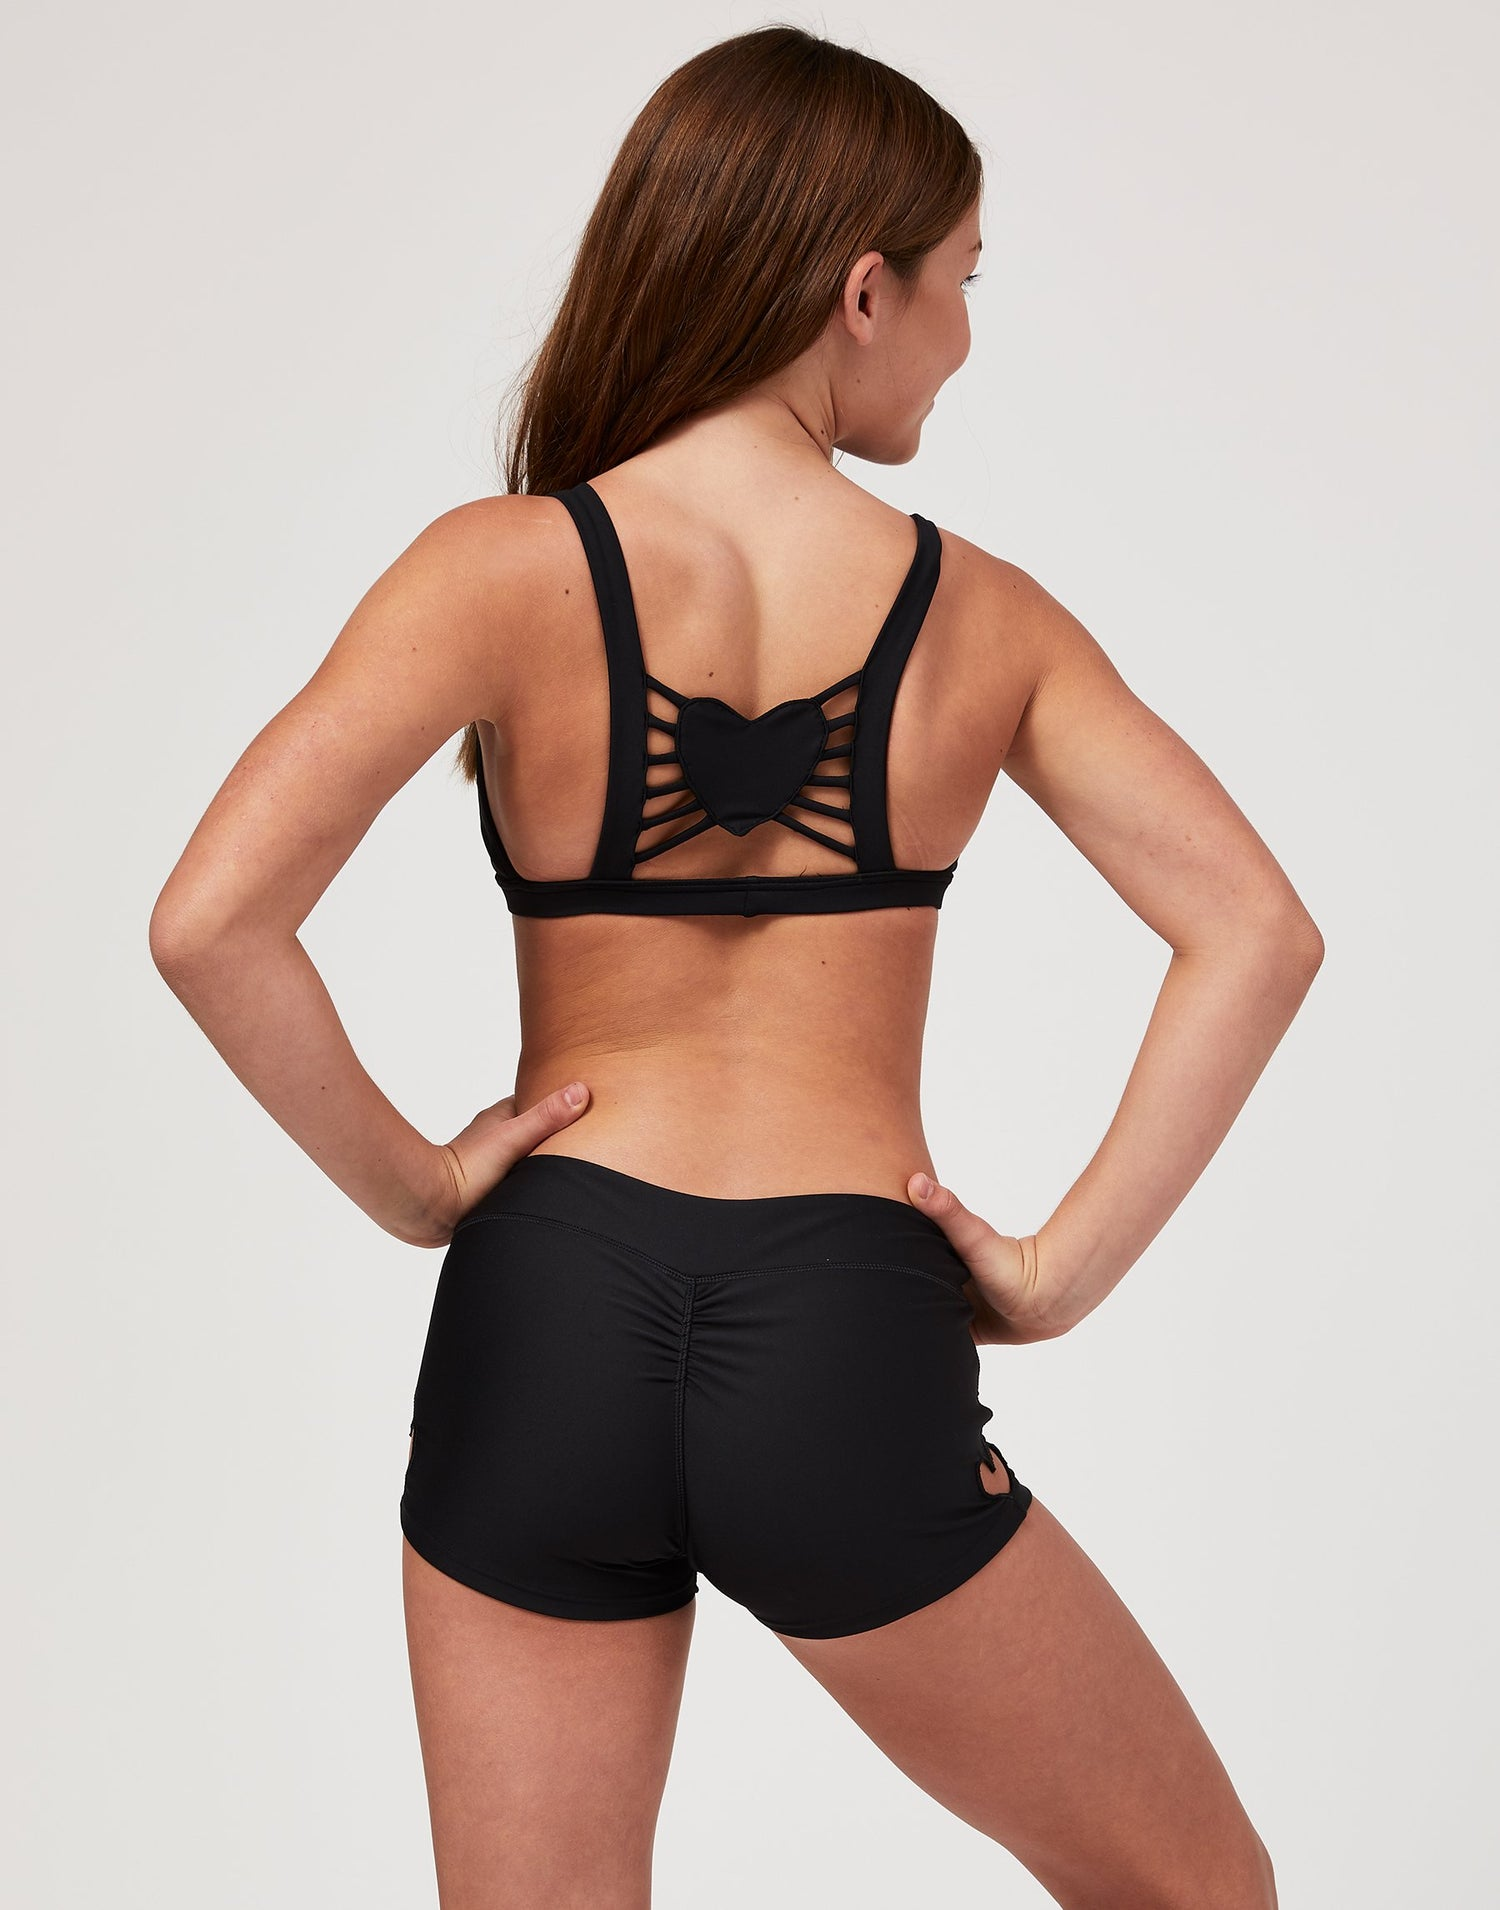 Adult Hartley Short with Heart Cutout in Black - back view